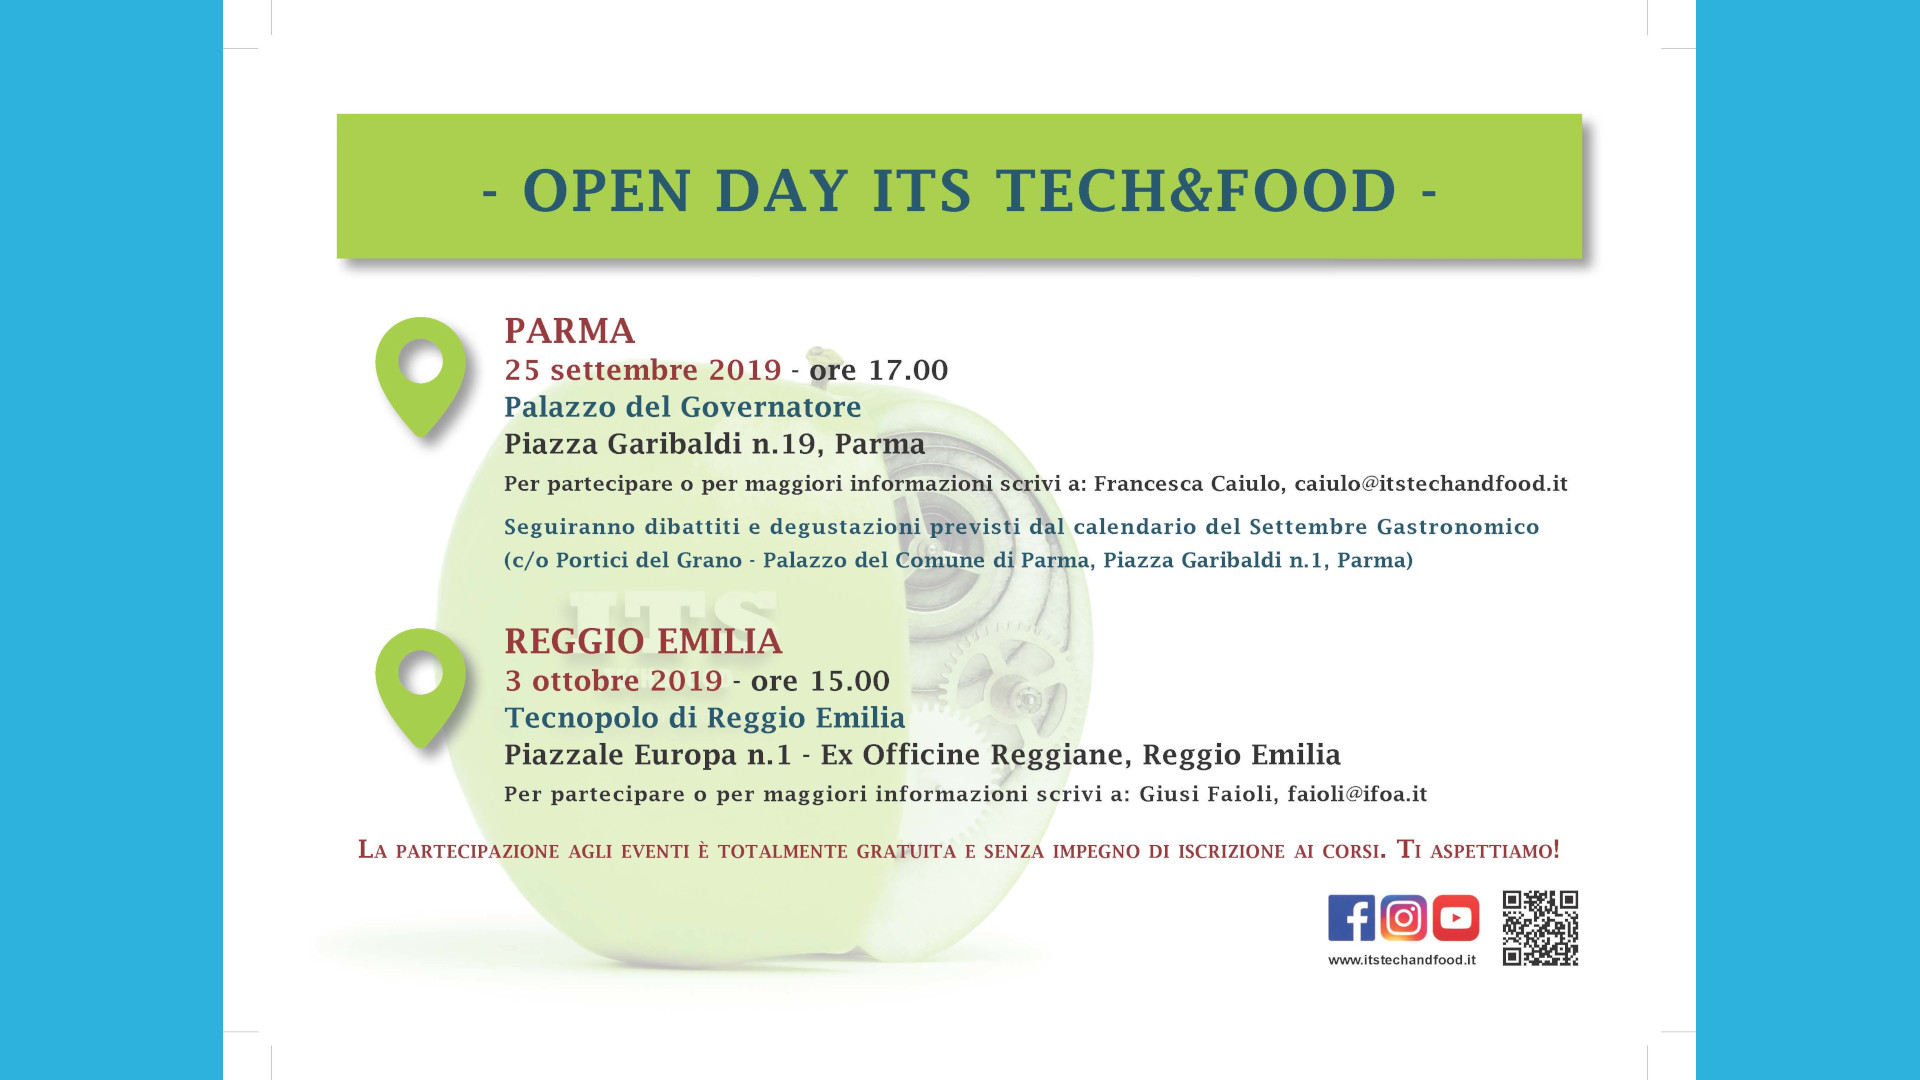 Cartolina Openday ITS TechFood Pagina 2